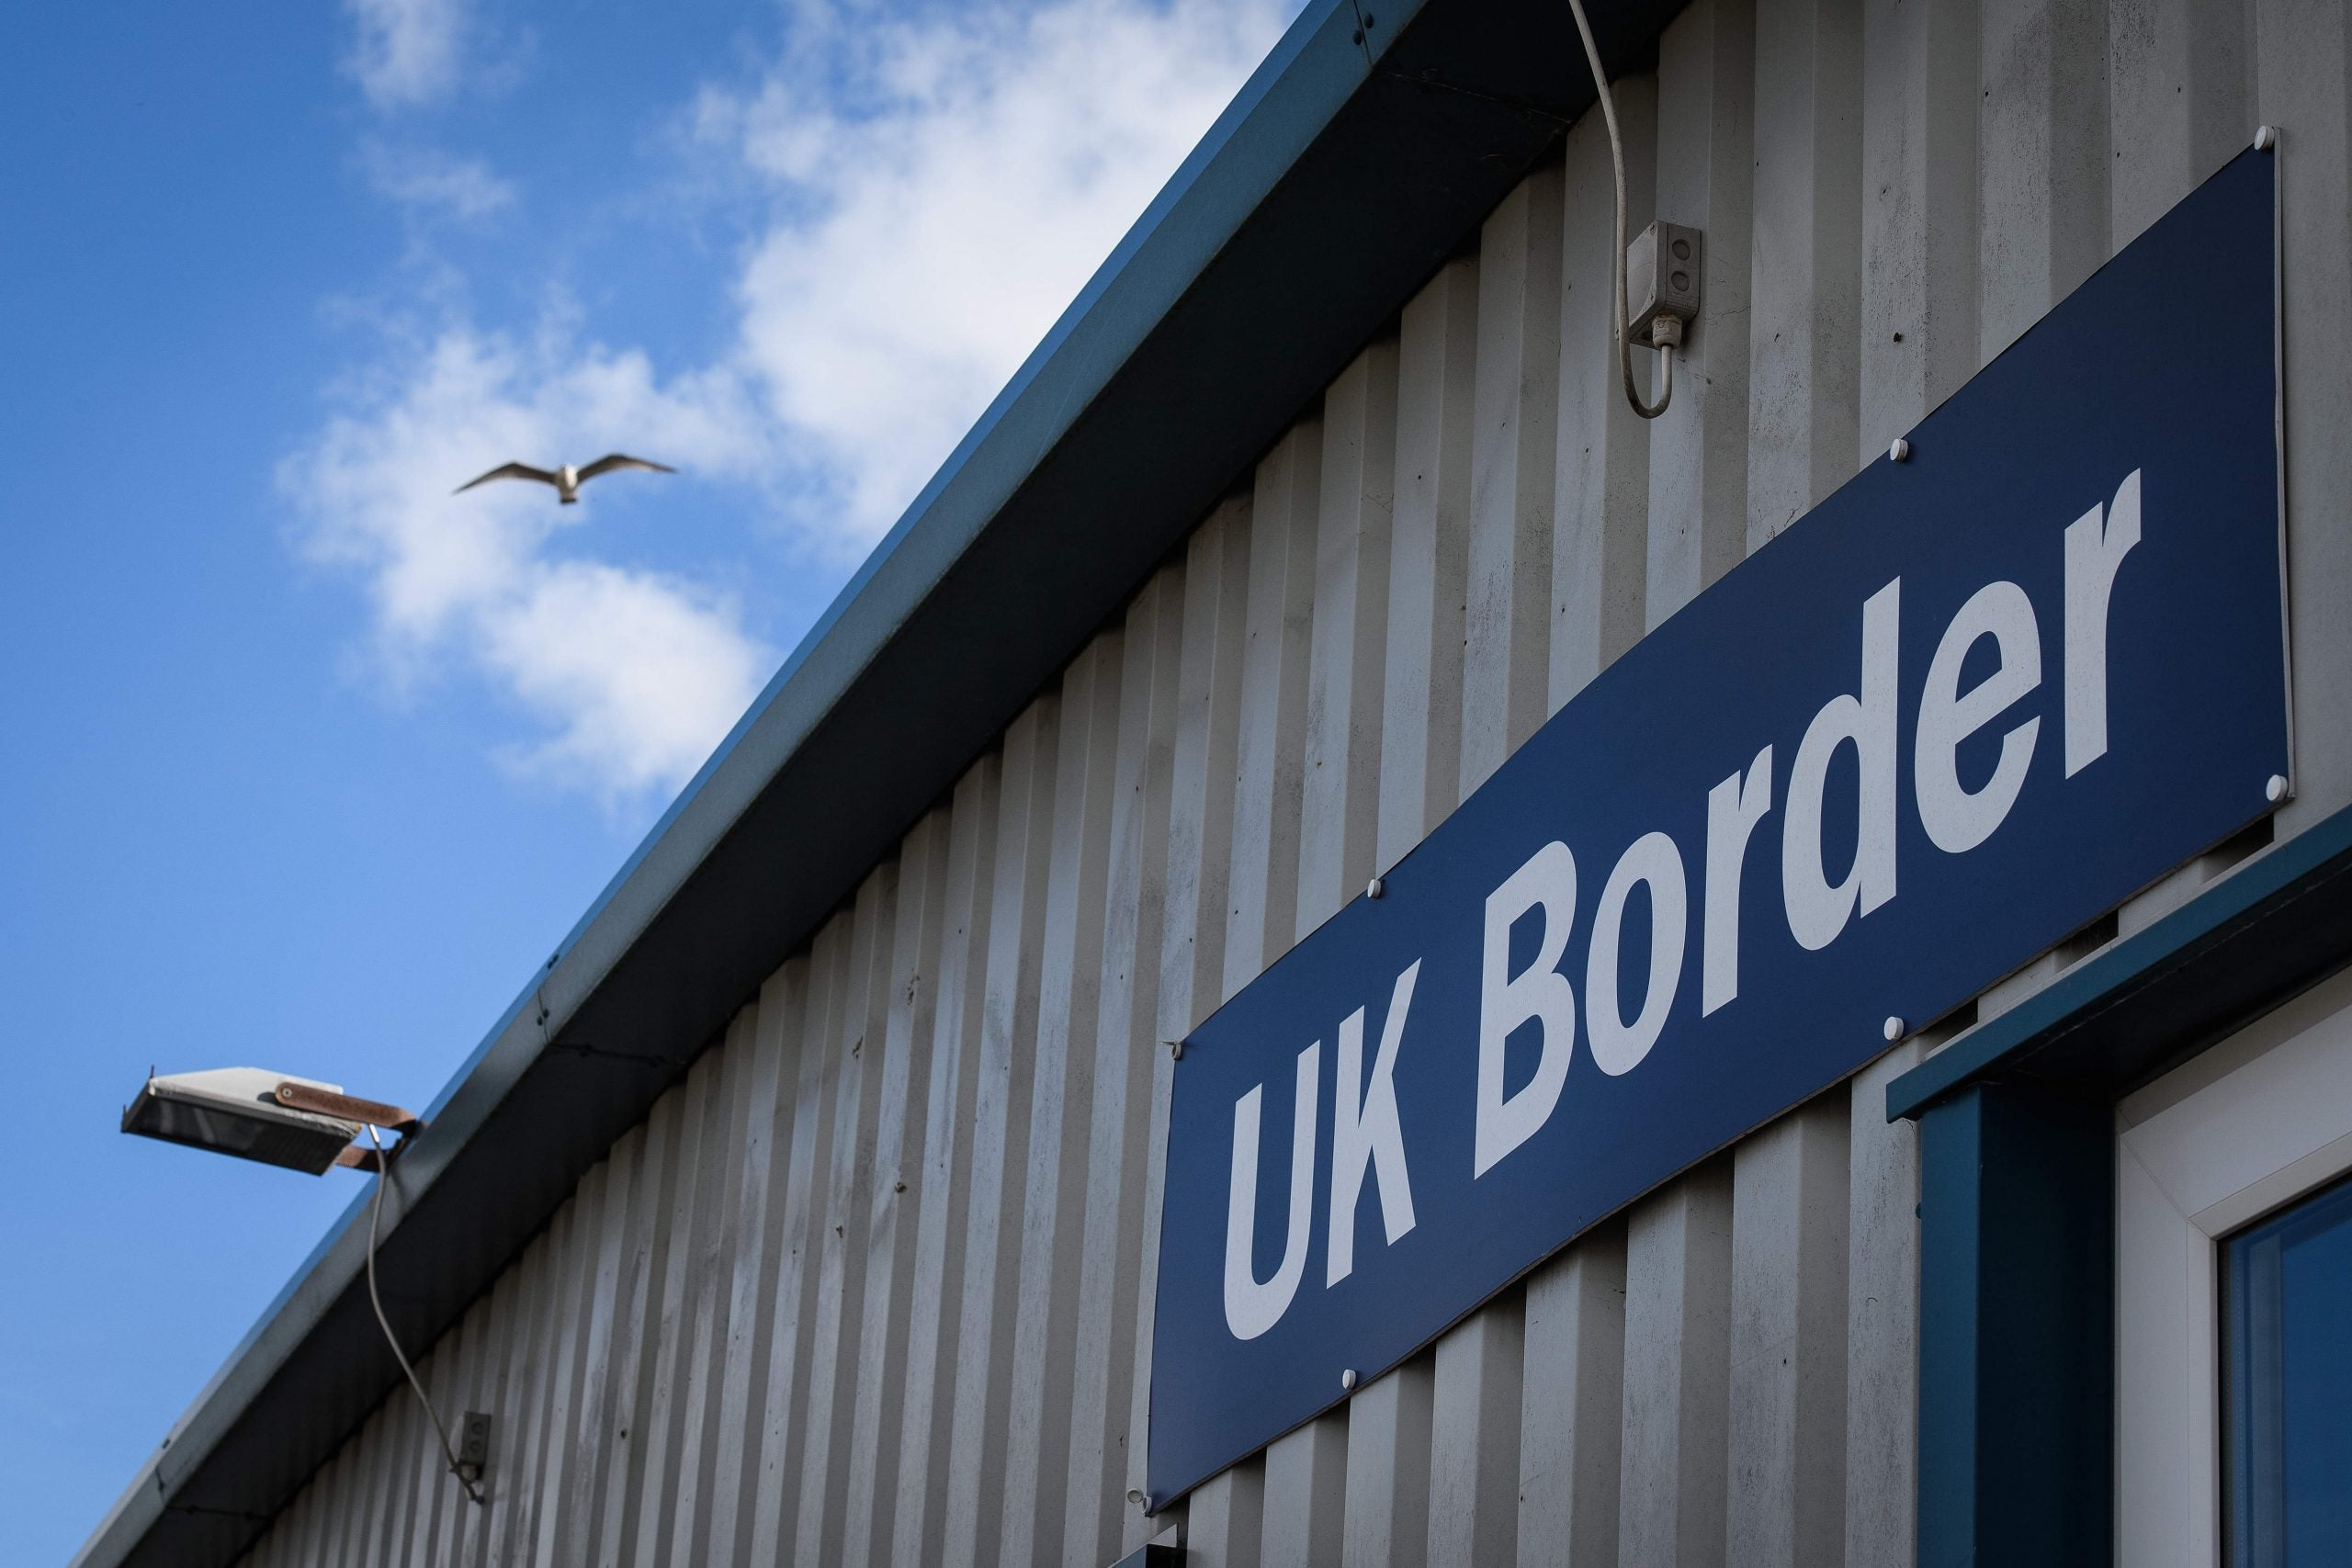 Don't just listen to people's concerns about immigration. Think